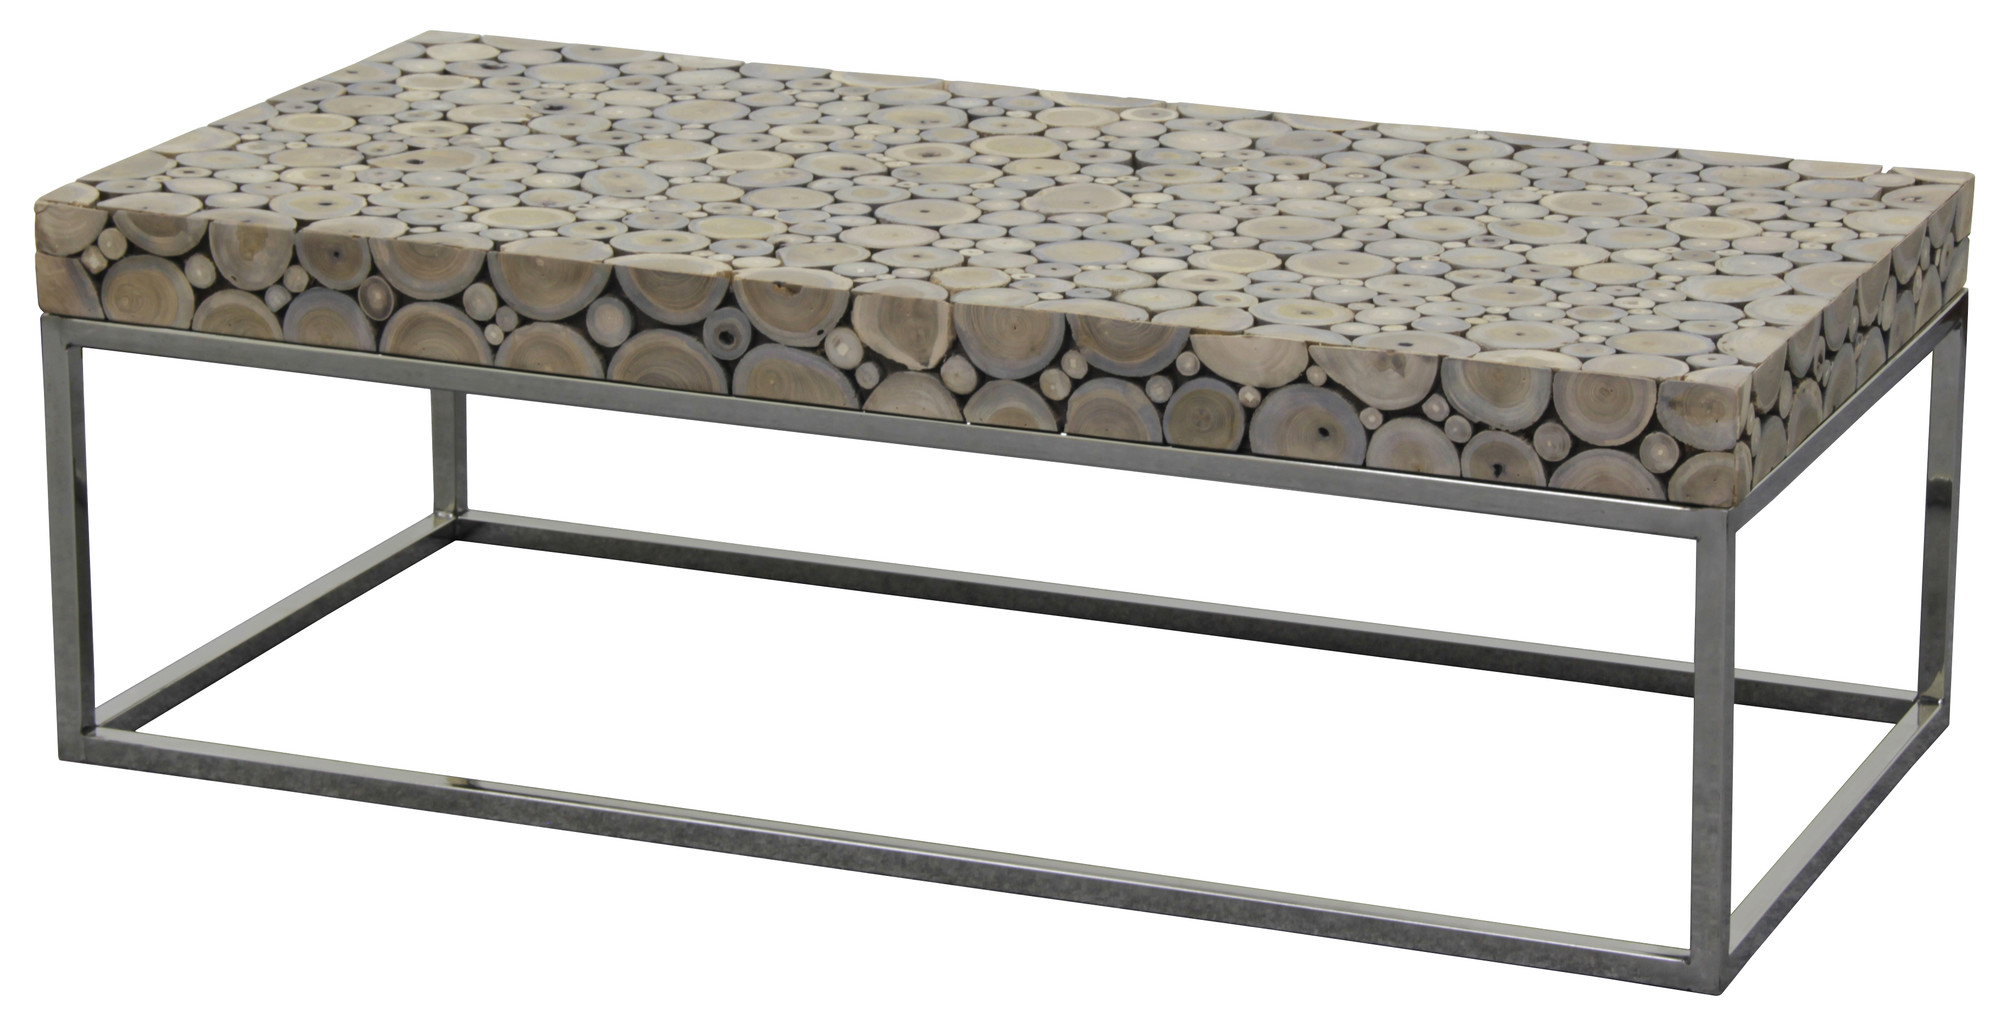 SKU #CVER1145 Recycled Driftwood Coffee Table With Stainless Steel Legs Is  Also Sometimes Listed Under The Following Manufacturer Numbers: CT 120 60  DWSL